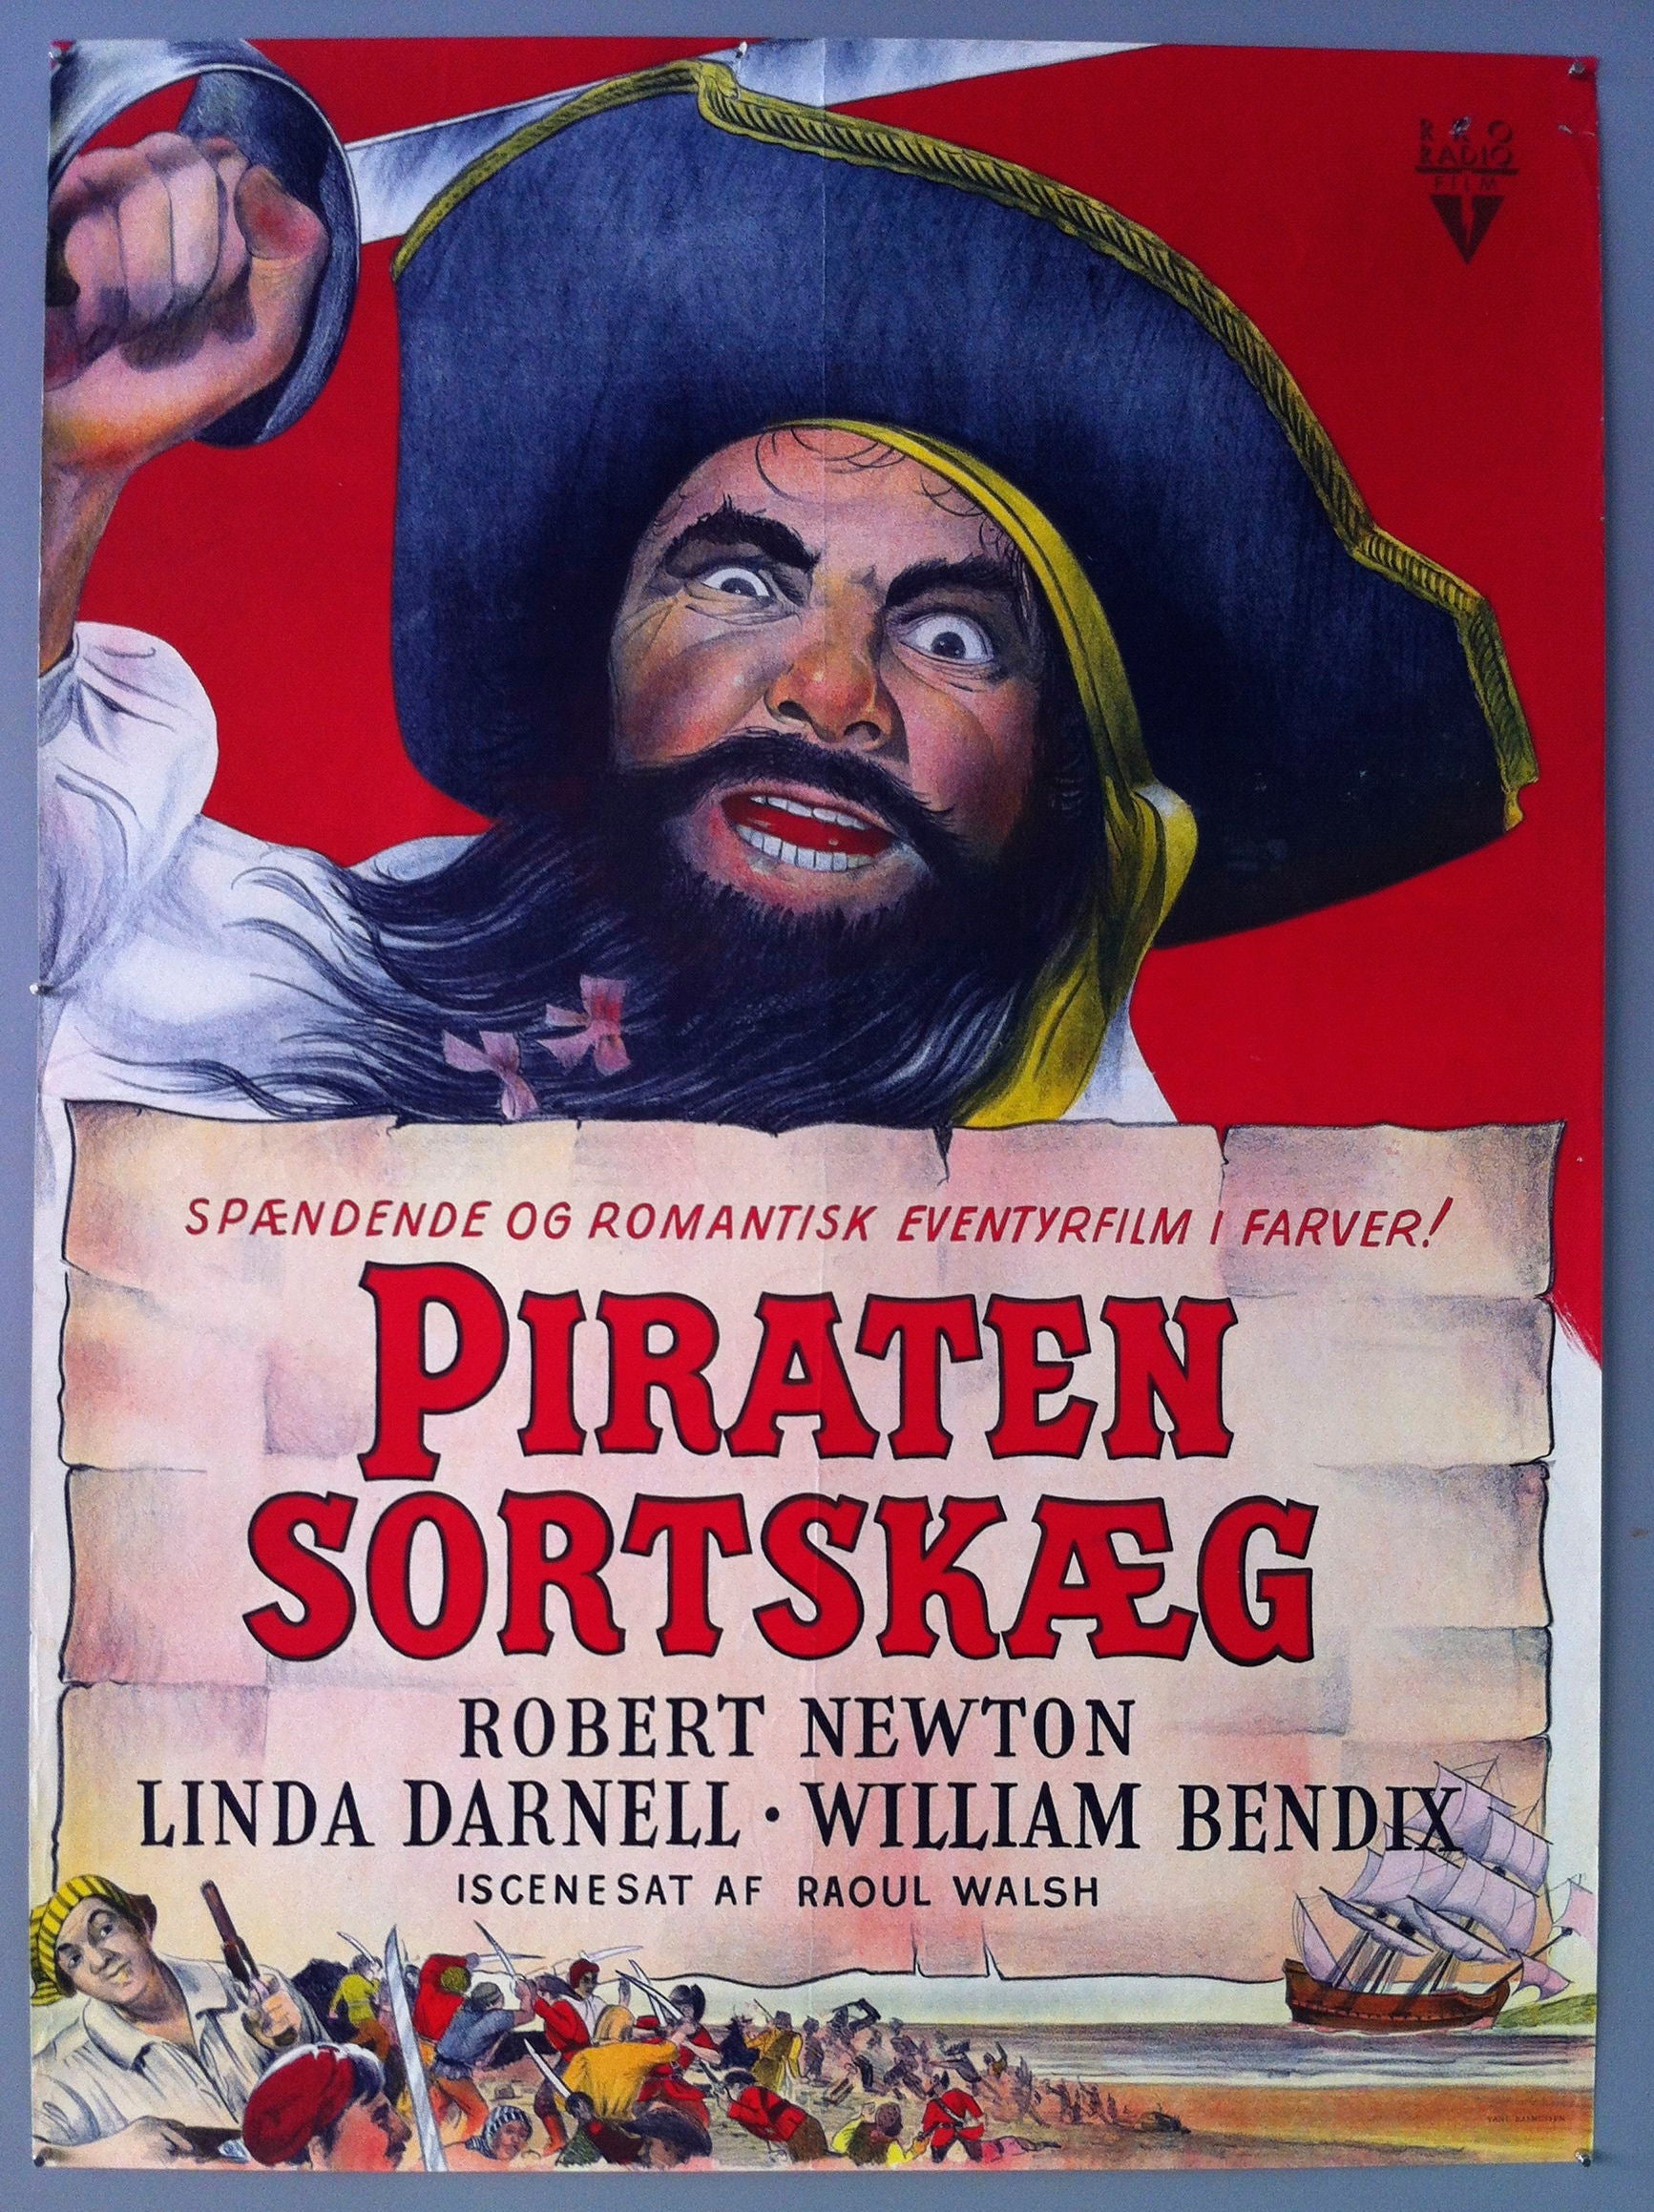 Piraten Sortskaeg